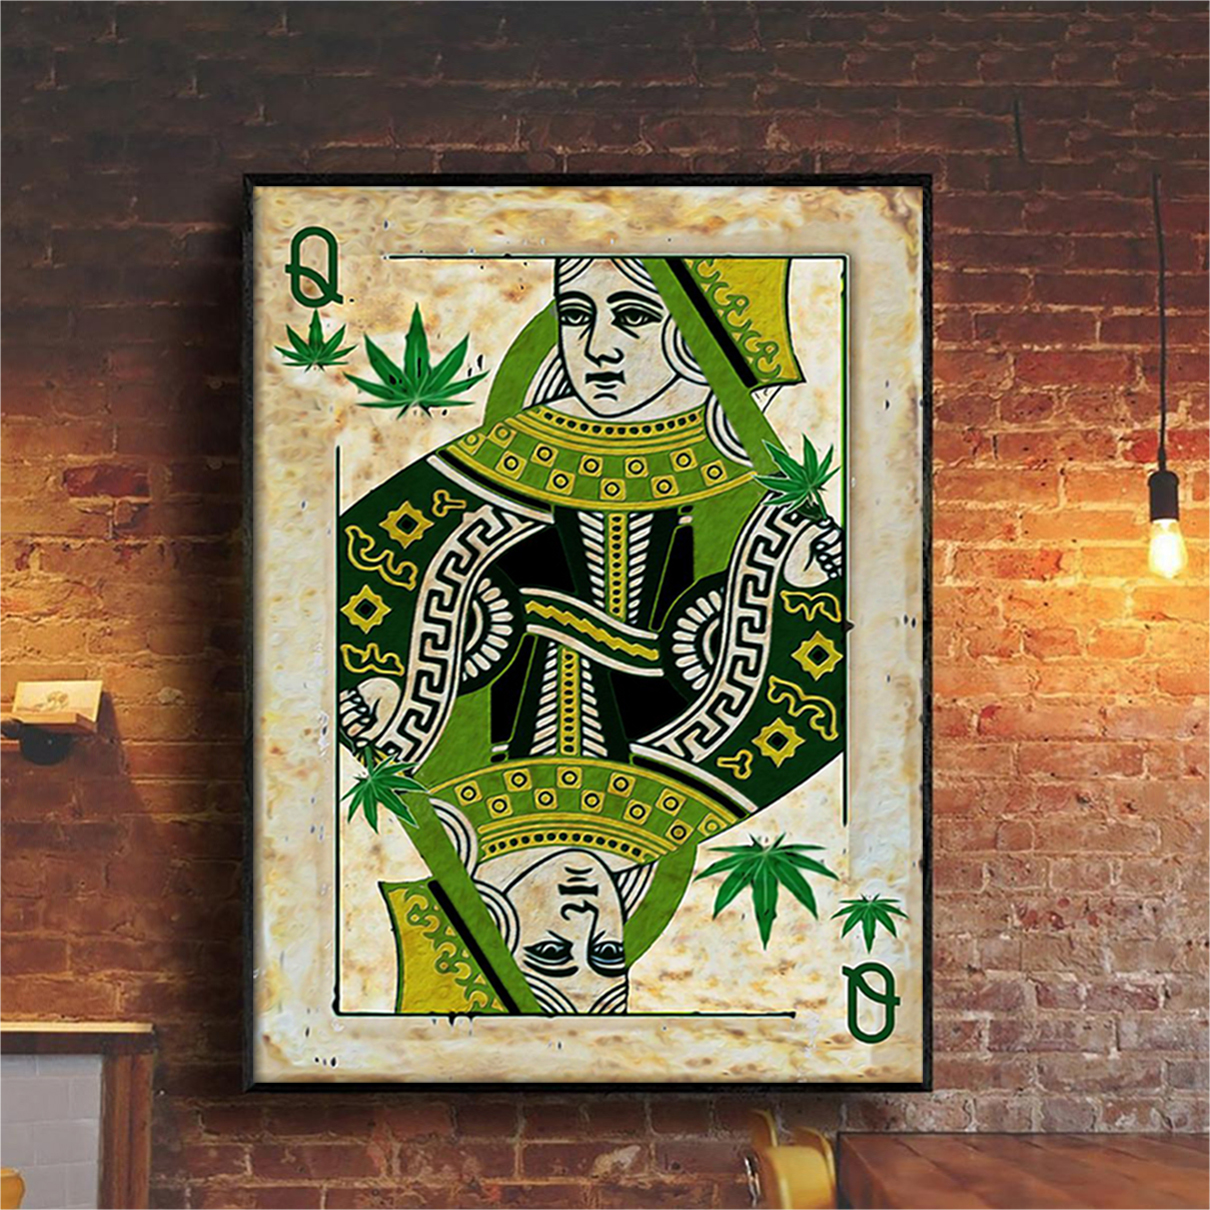 Queen card weed cannabis poster A1